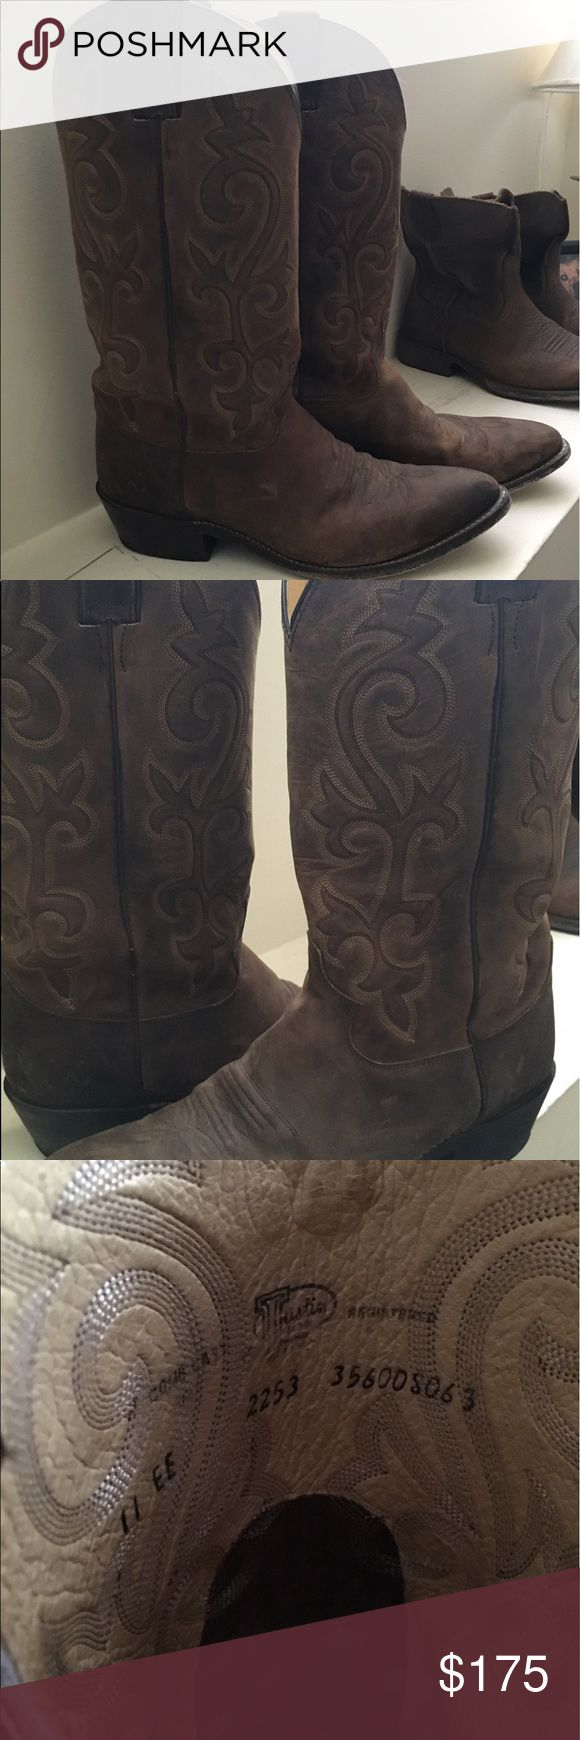 JUSTIN BUCK BAY APACHE BOOTS SZ: 11 EE Practically new JUSTIN BUCK BAY APACHE BOOTS size 11 EE. only worn for a couple of weddings. Bought for $202. Asking $175- perfect for the upcoming outdoor concert season! Don't miss out on this steal for you or your man! Justin Boots Shoes Boots